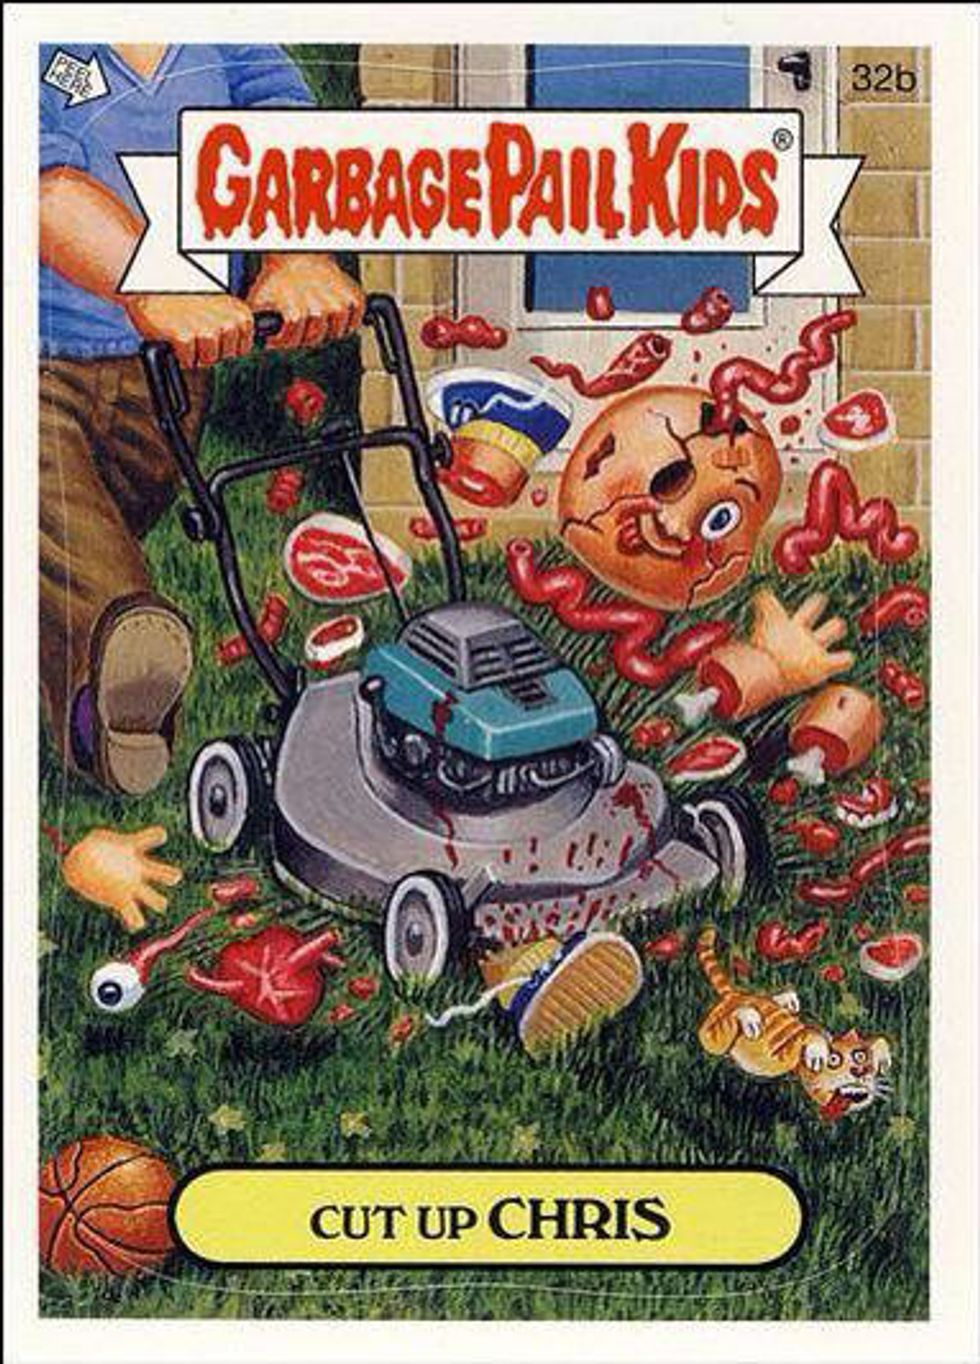 16 Things I Miss From My Childhood Garbage Pail Kids Garbage Pail Kids Cards Garbage